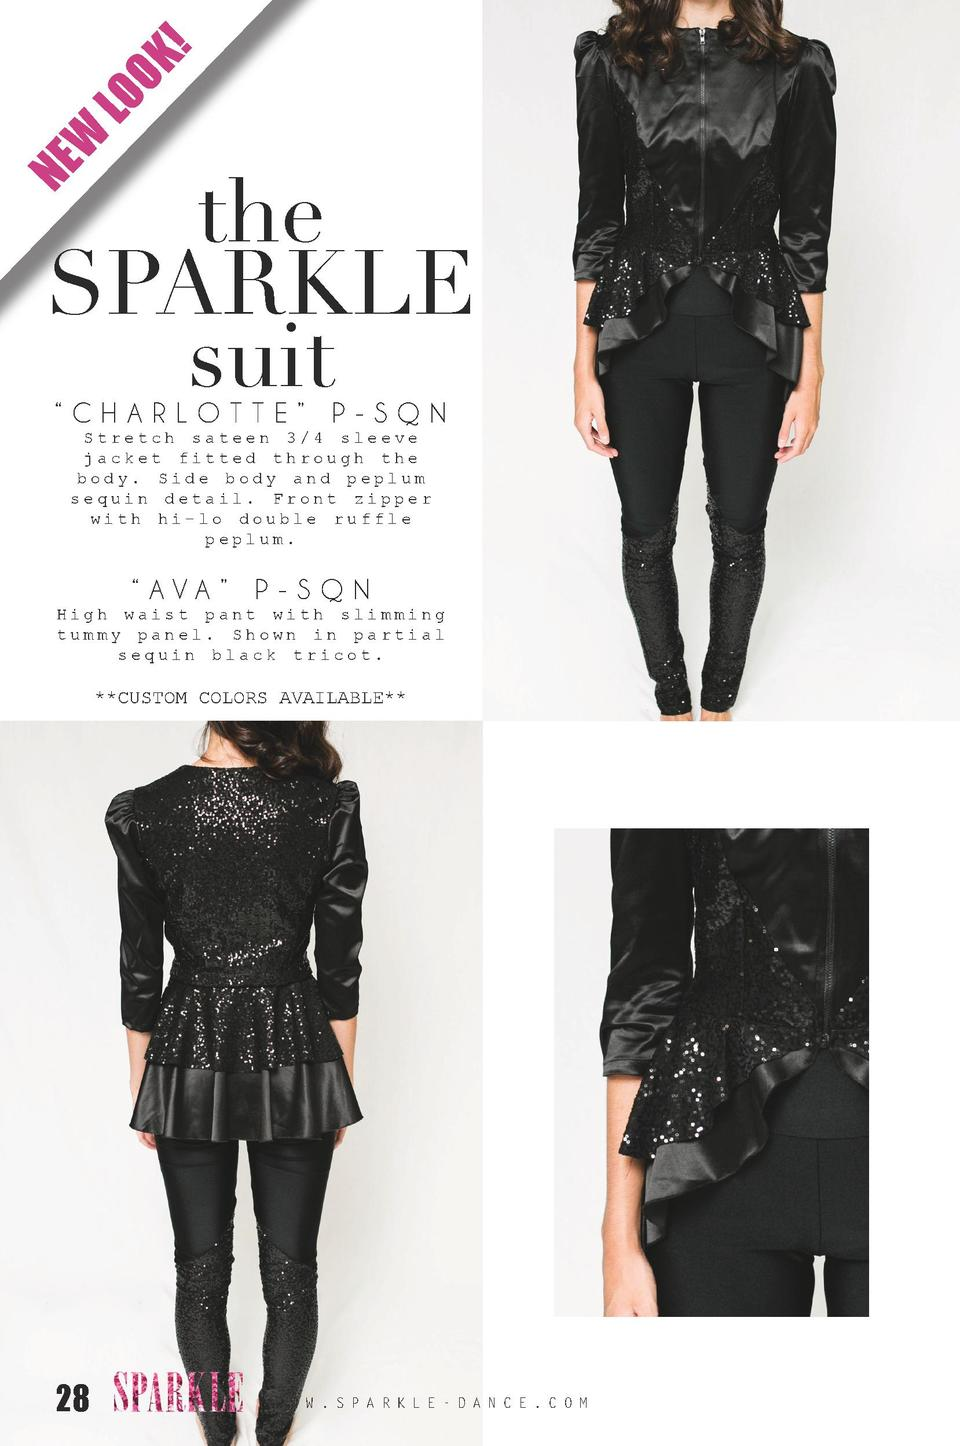 K  LO O W NE  the SPARKLE suit    CHARLOTTE    P-SQN Stretch sateen 3 4 sleeve jacket fitted through the body. Side body a...